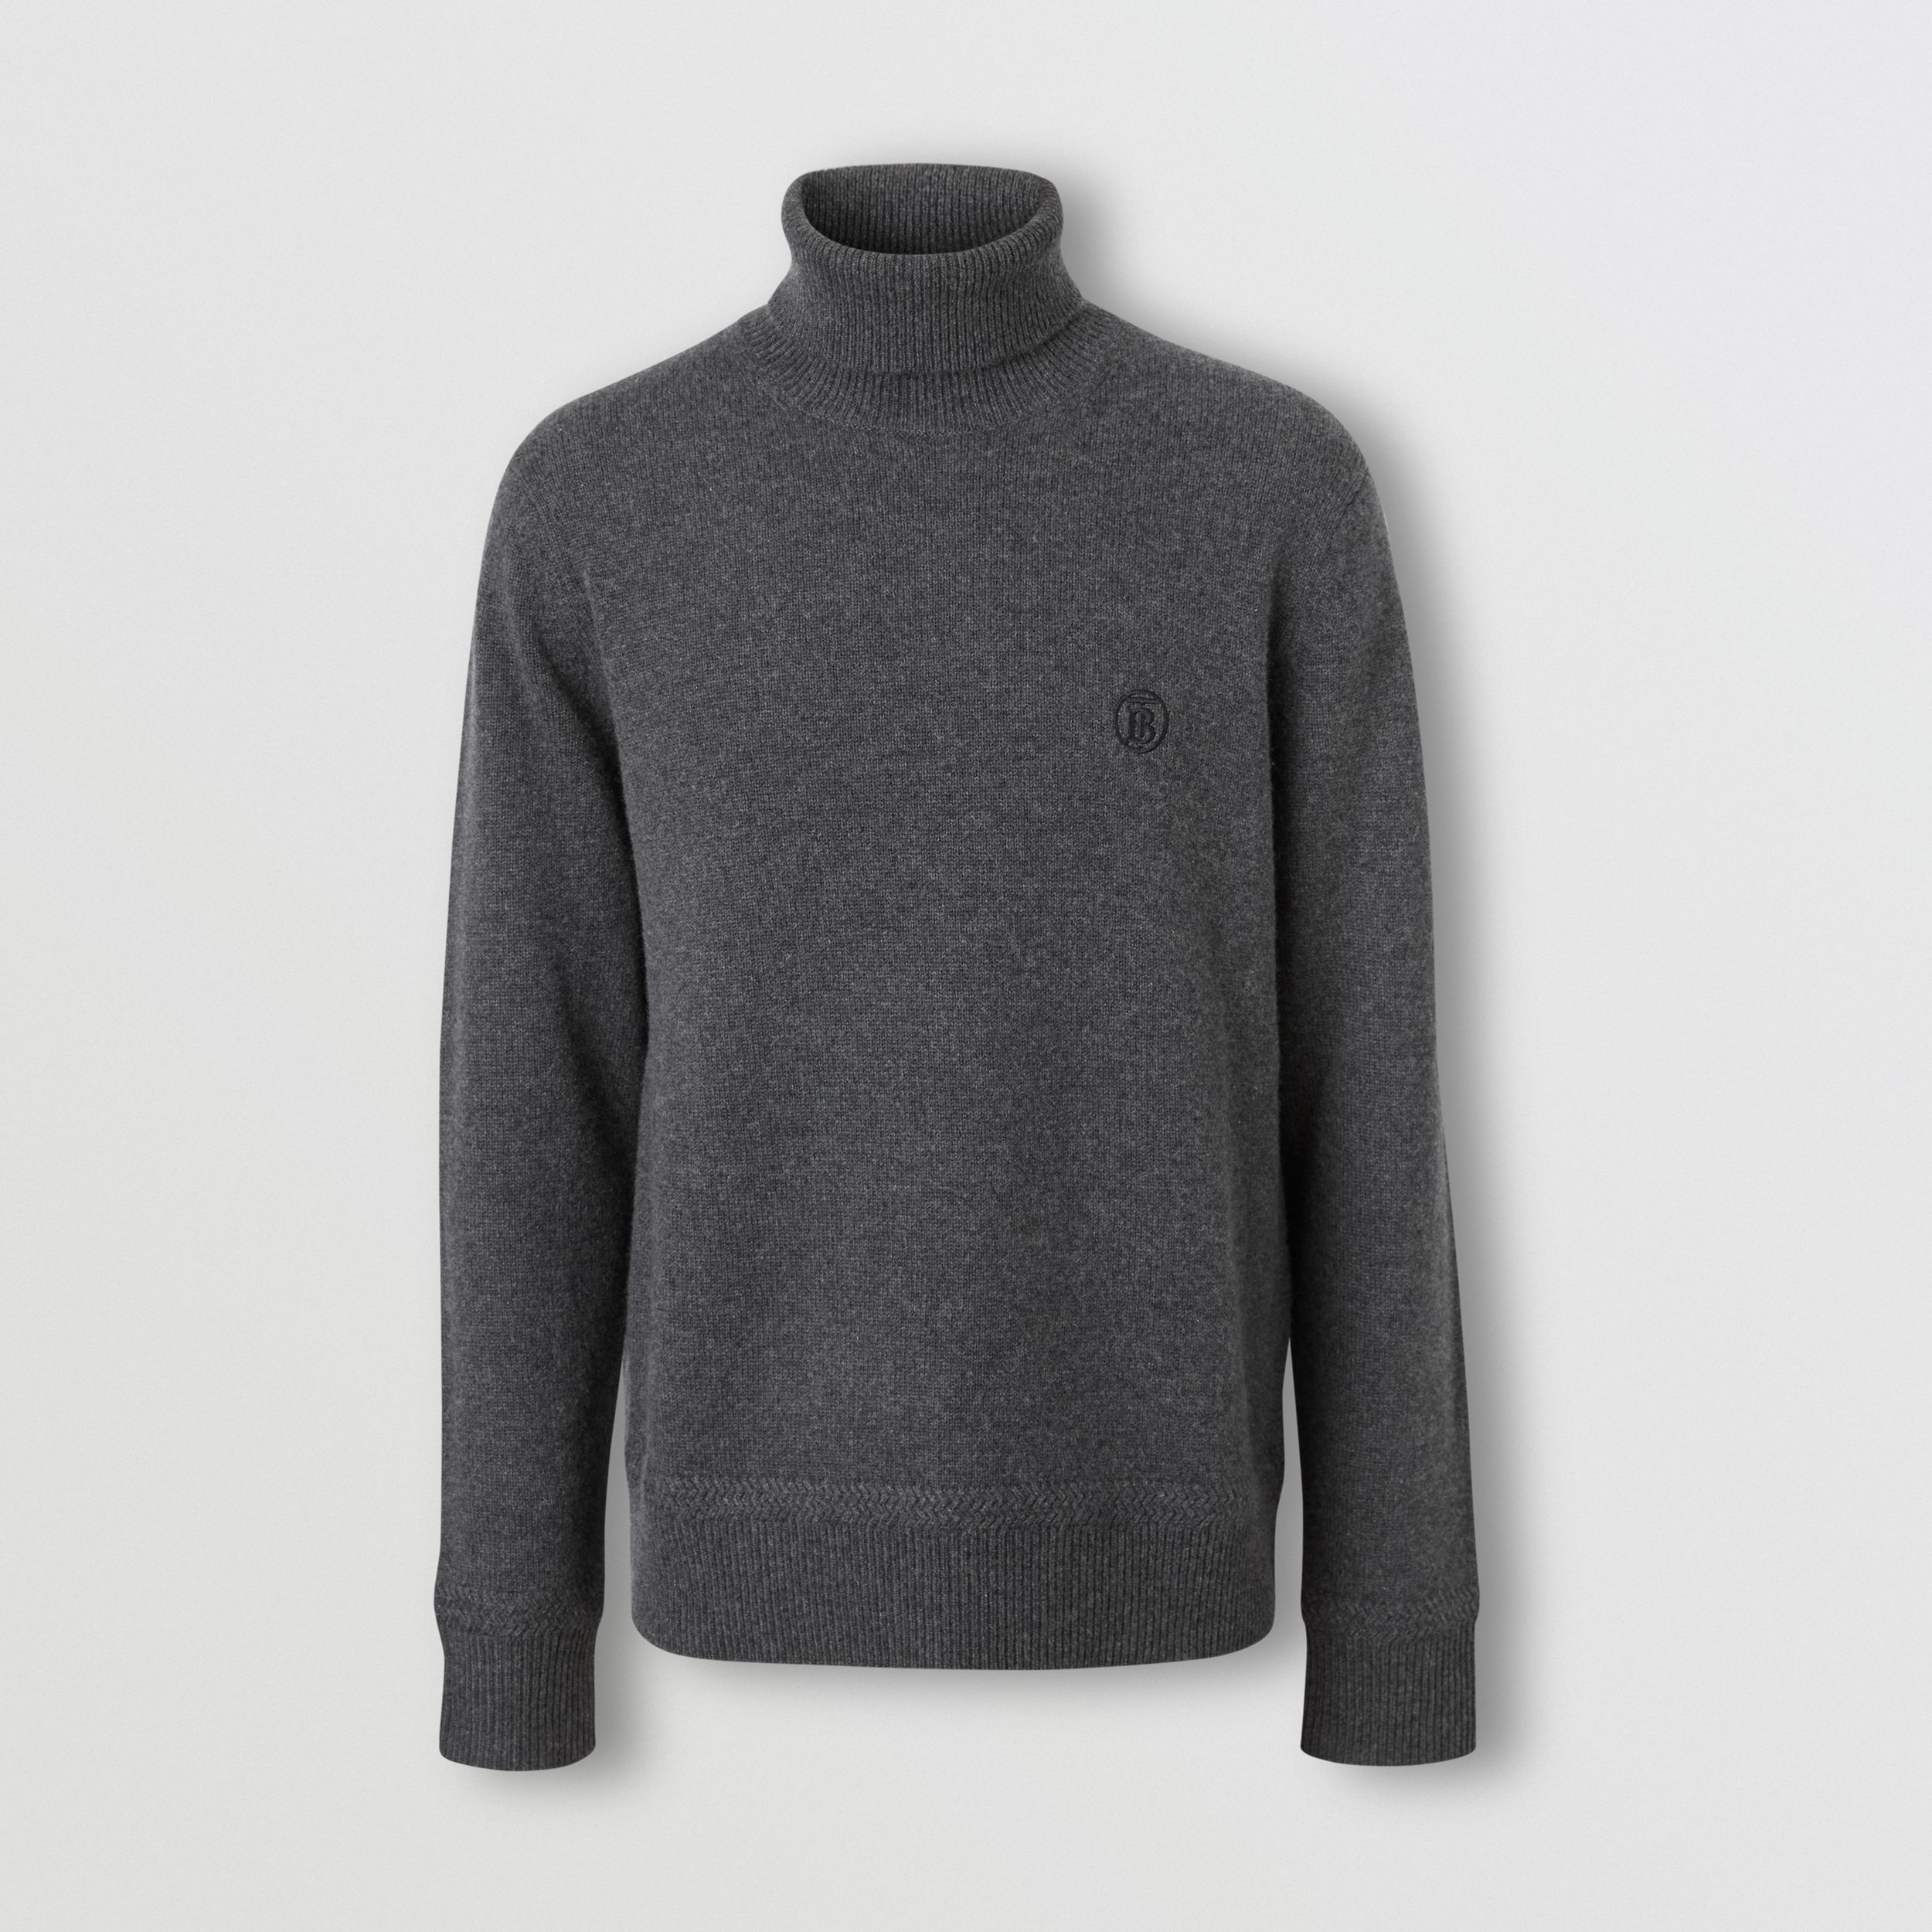 Monogram Motif Cashmere Roll-neck Sweater in Charcoal - Men | Burberry - 4